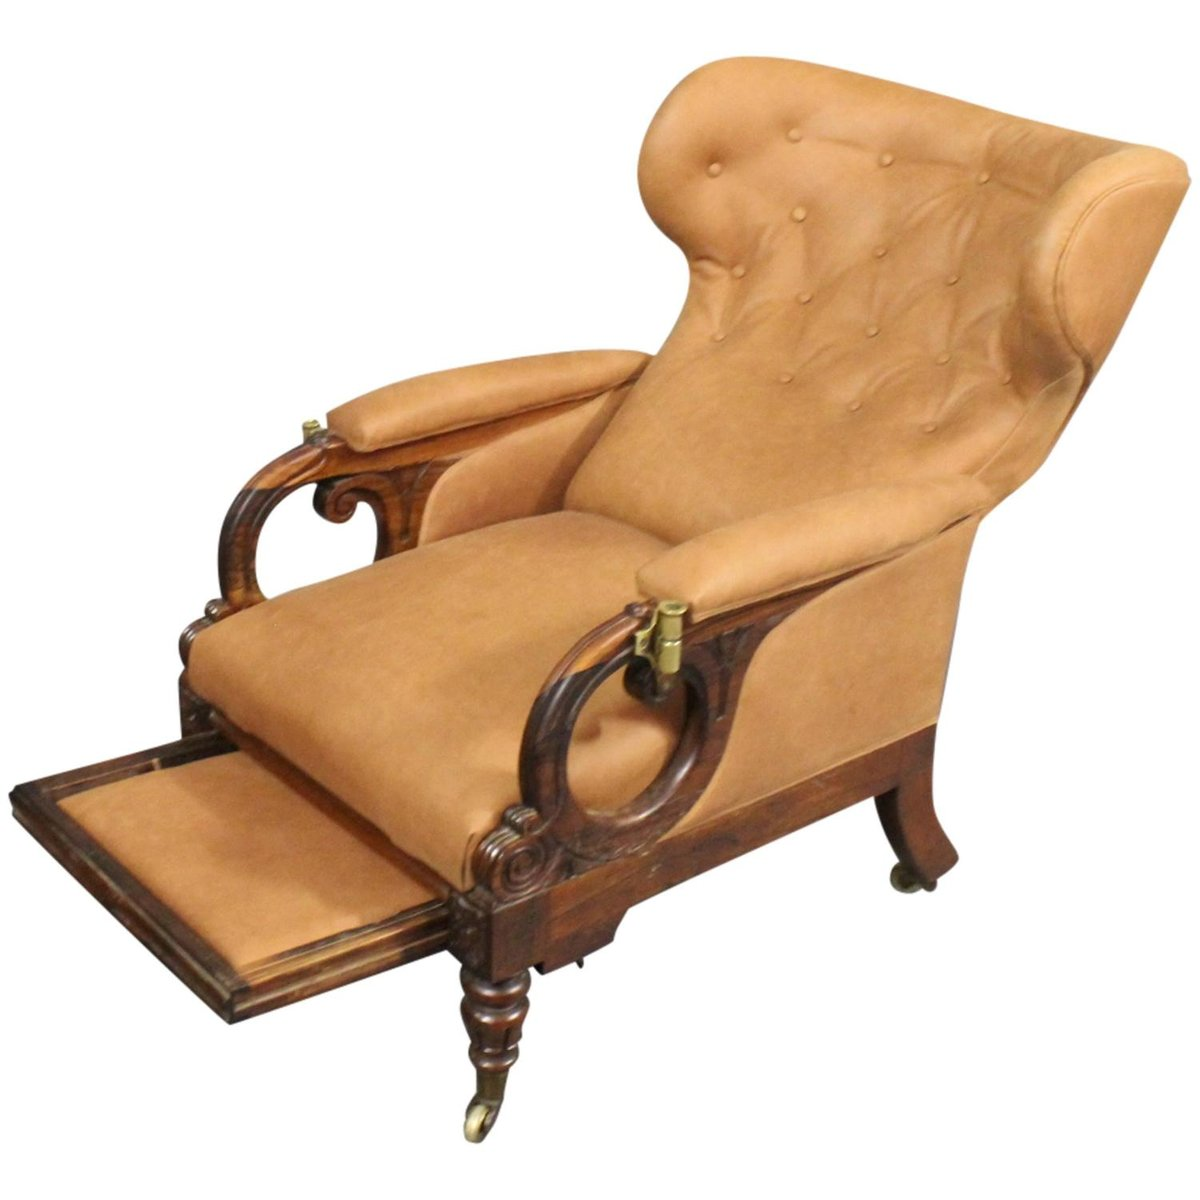 Wingback Recliner Chair William Iv Reclining Wingback Chair From George Minter 1830s